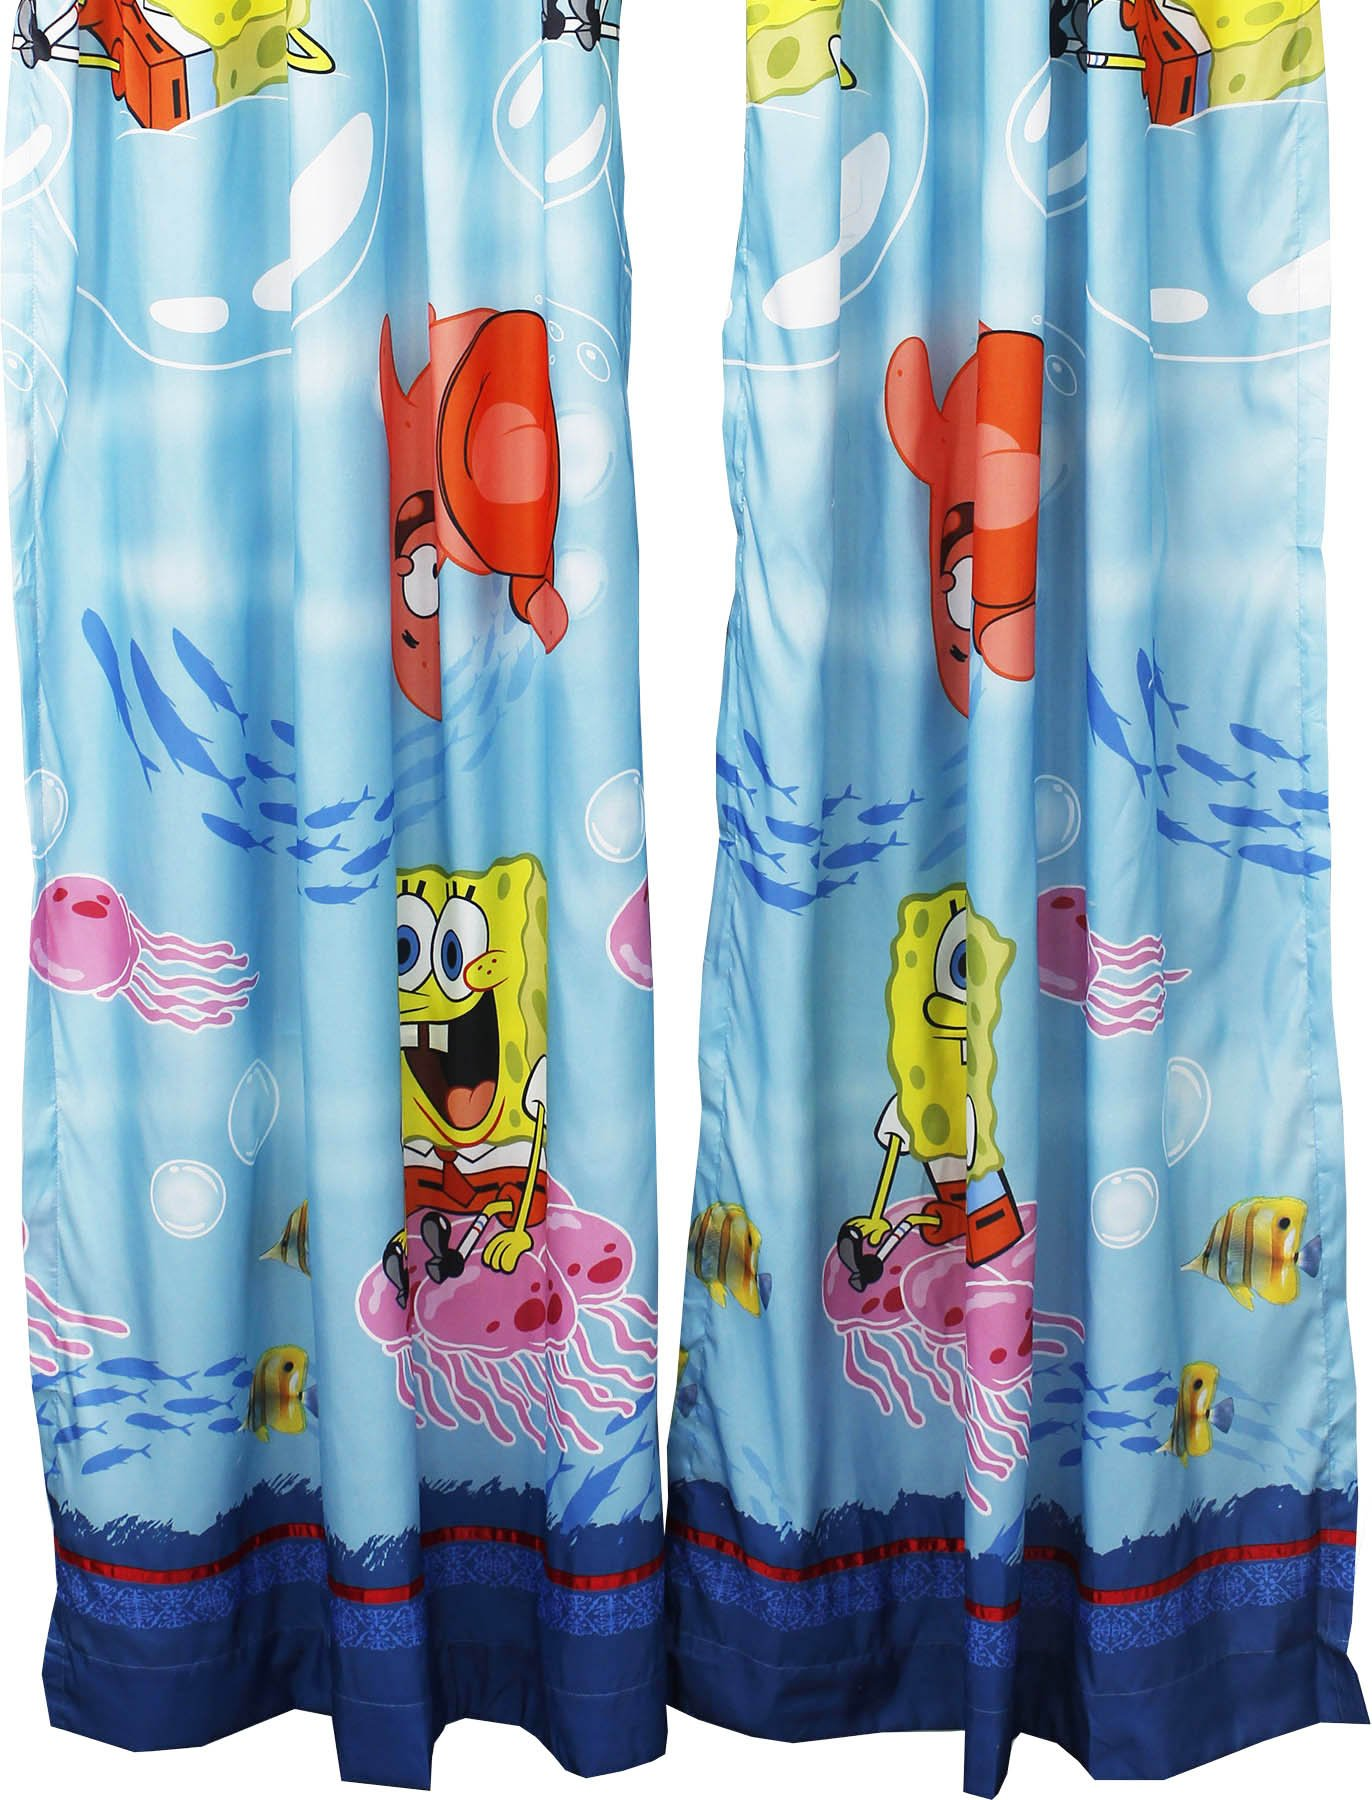 2pc Catch Me Spongebob Squarepants Long Curtain Set